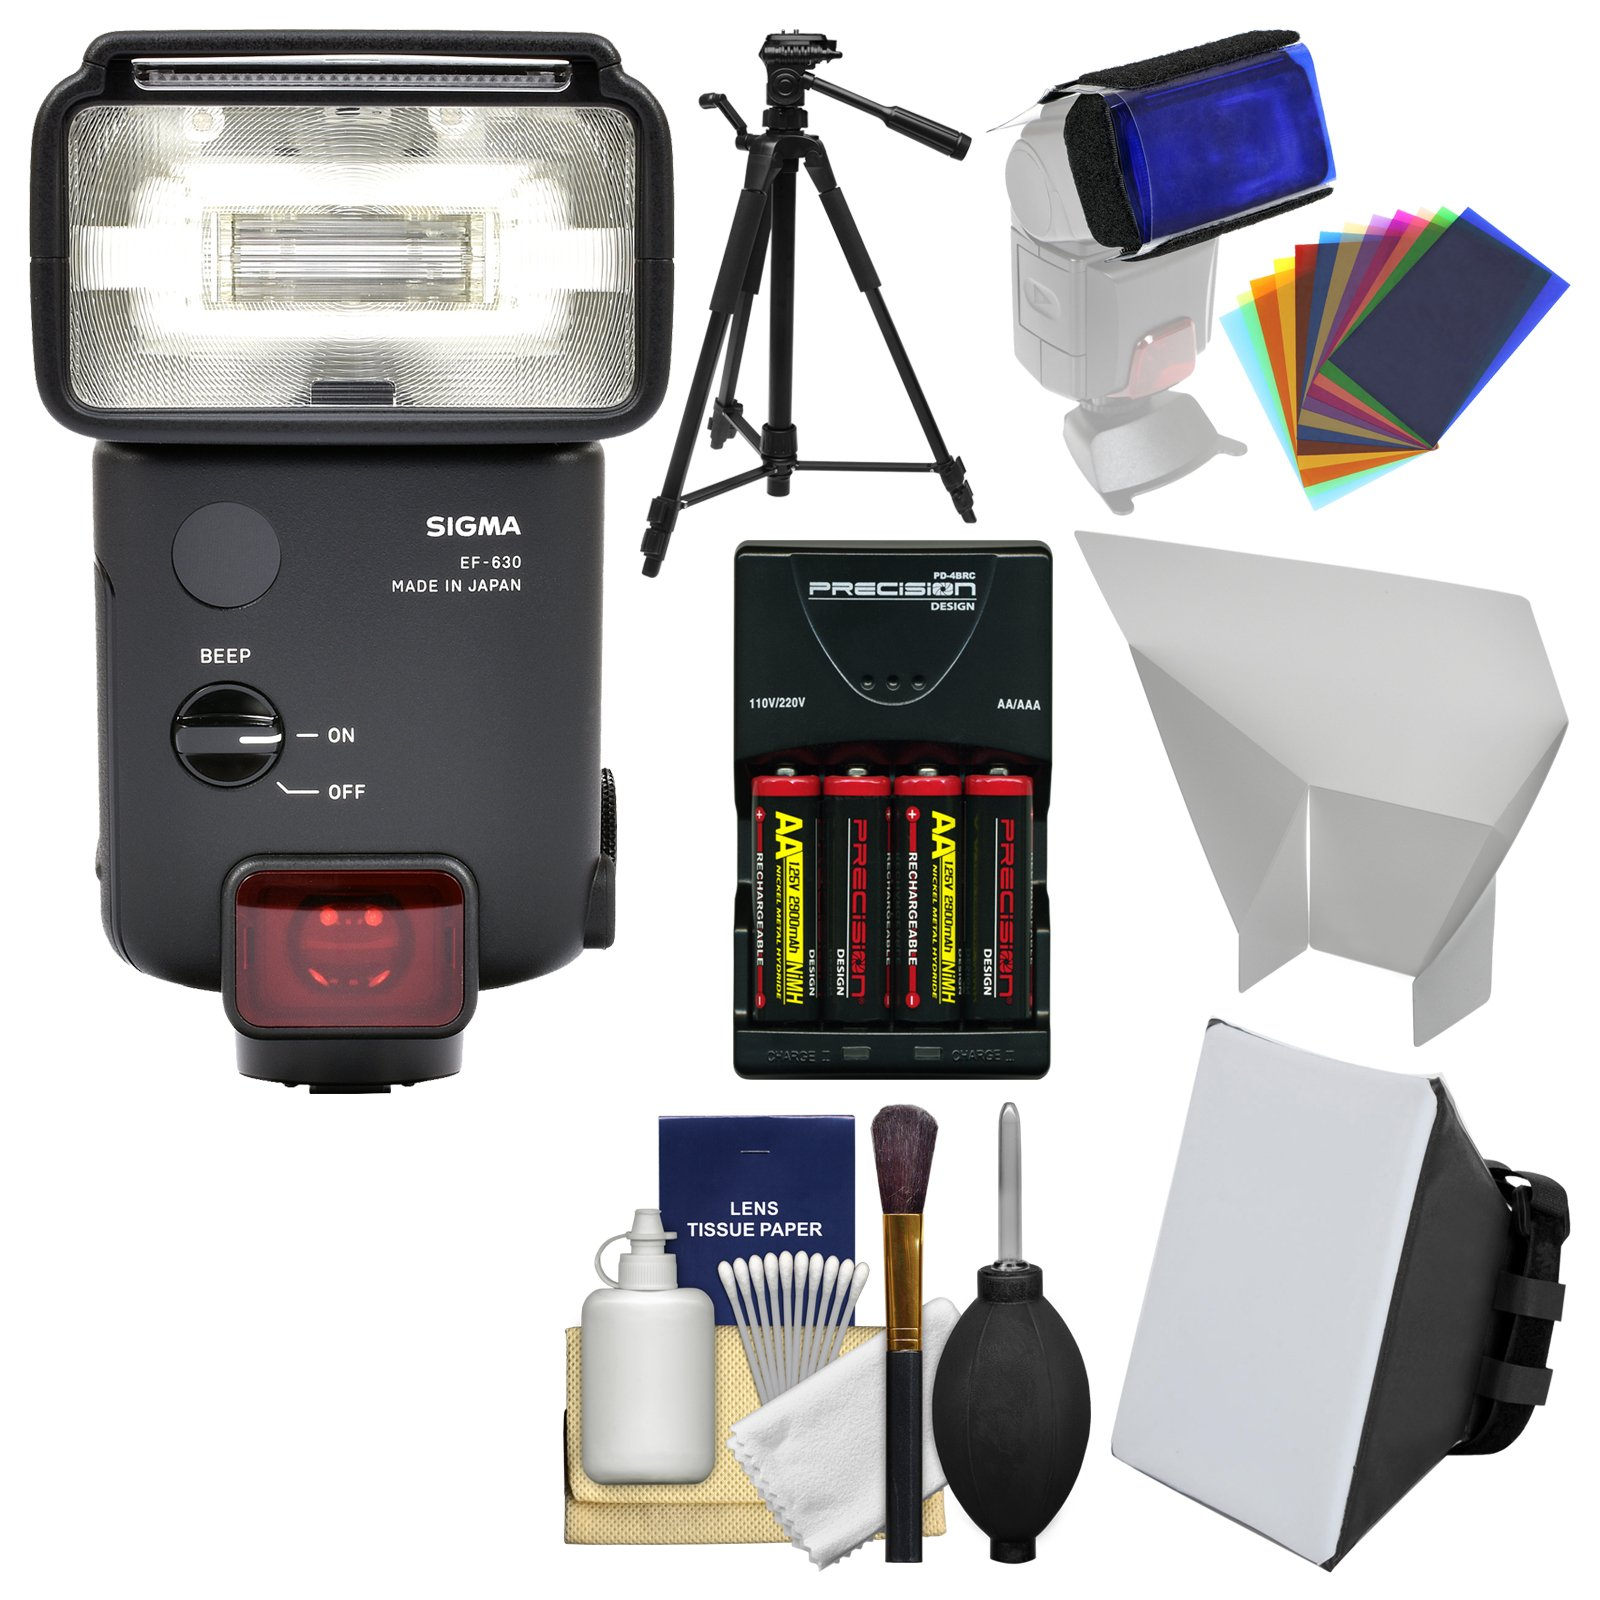 Sigma EF-630 Electronic Flash with Soft Box + Reflector + Tripod + Batteries & Charger + Kit for Canon EOS Digital SLR Cameras by Sigma